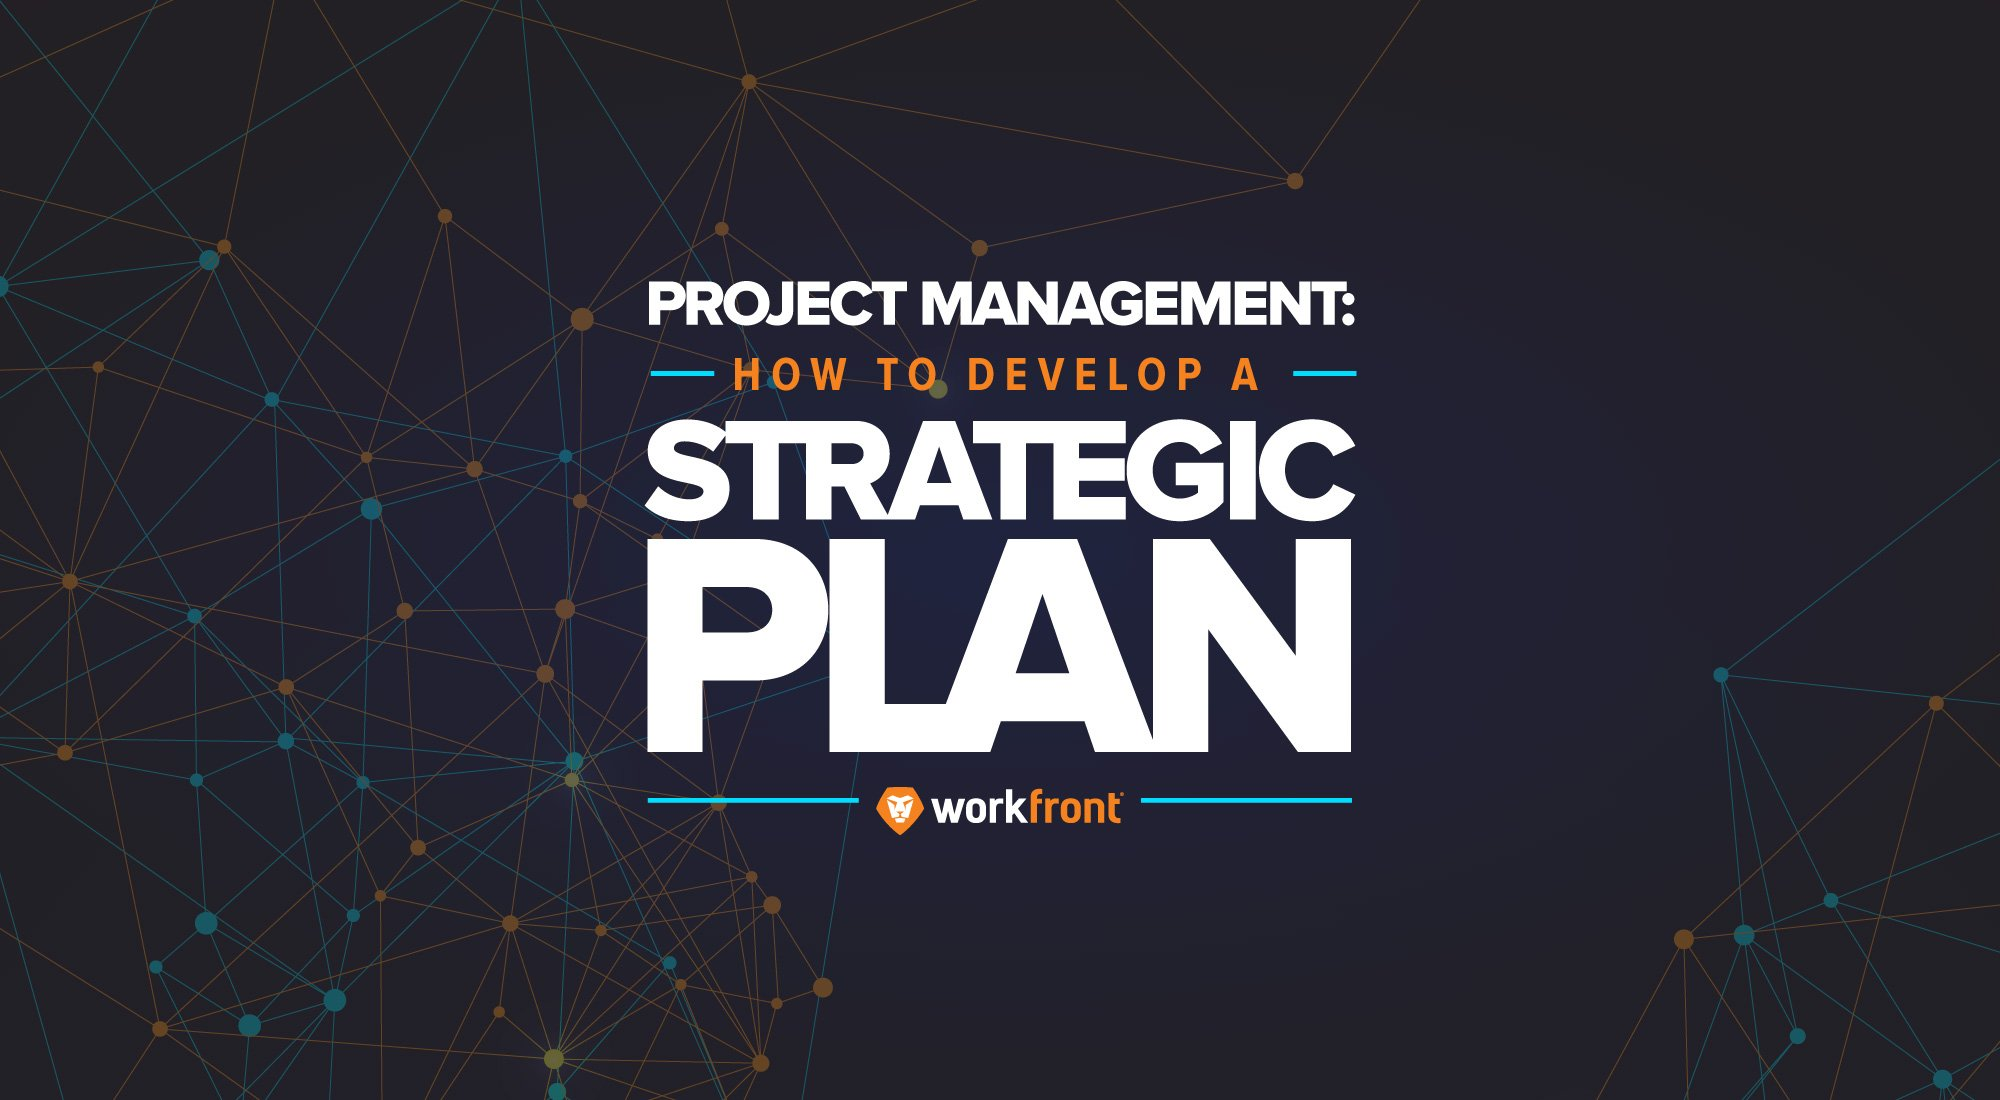 Project Management How To Develop A Strategic Plan Workfront